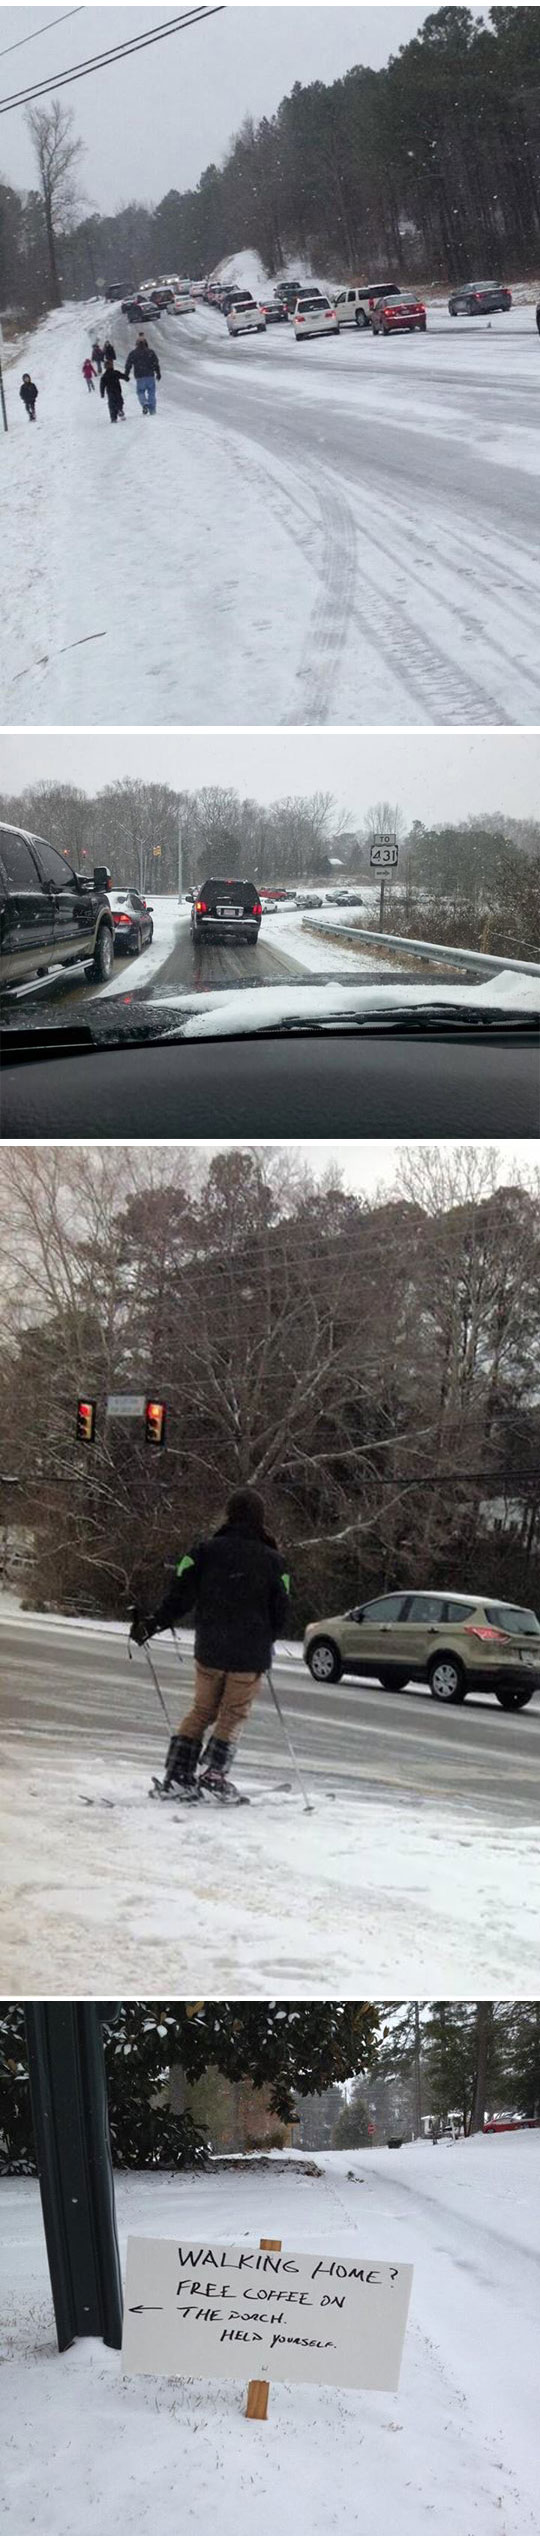 funny-winter-snow-accidents-car-roads-coffee